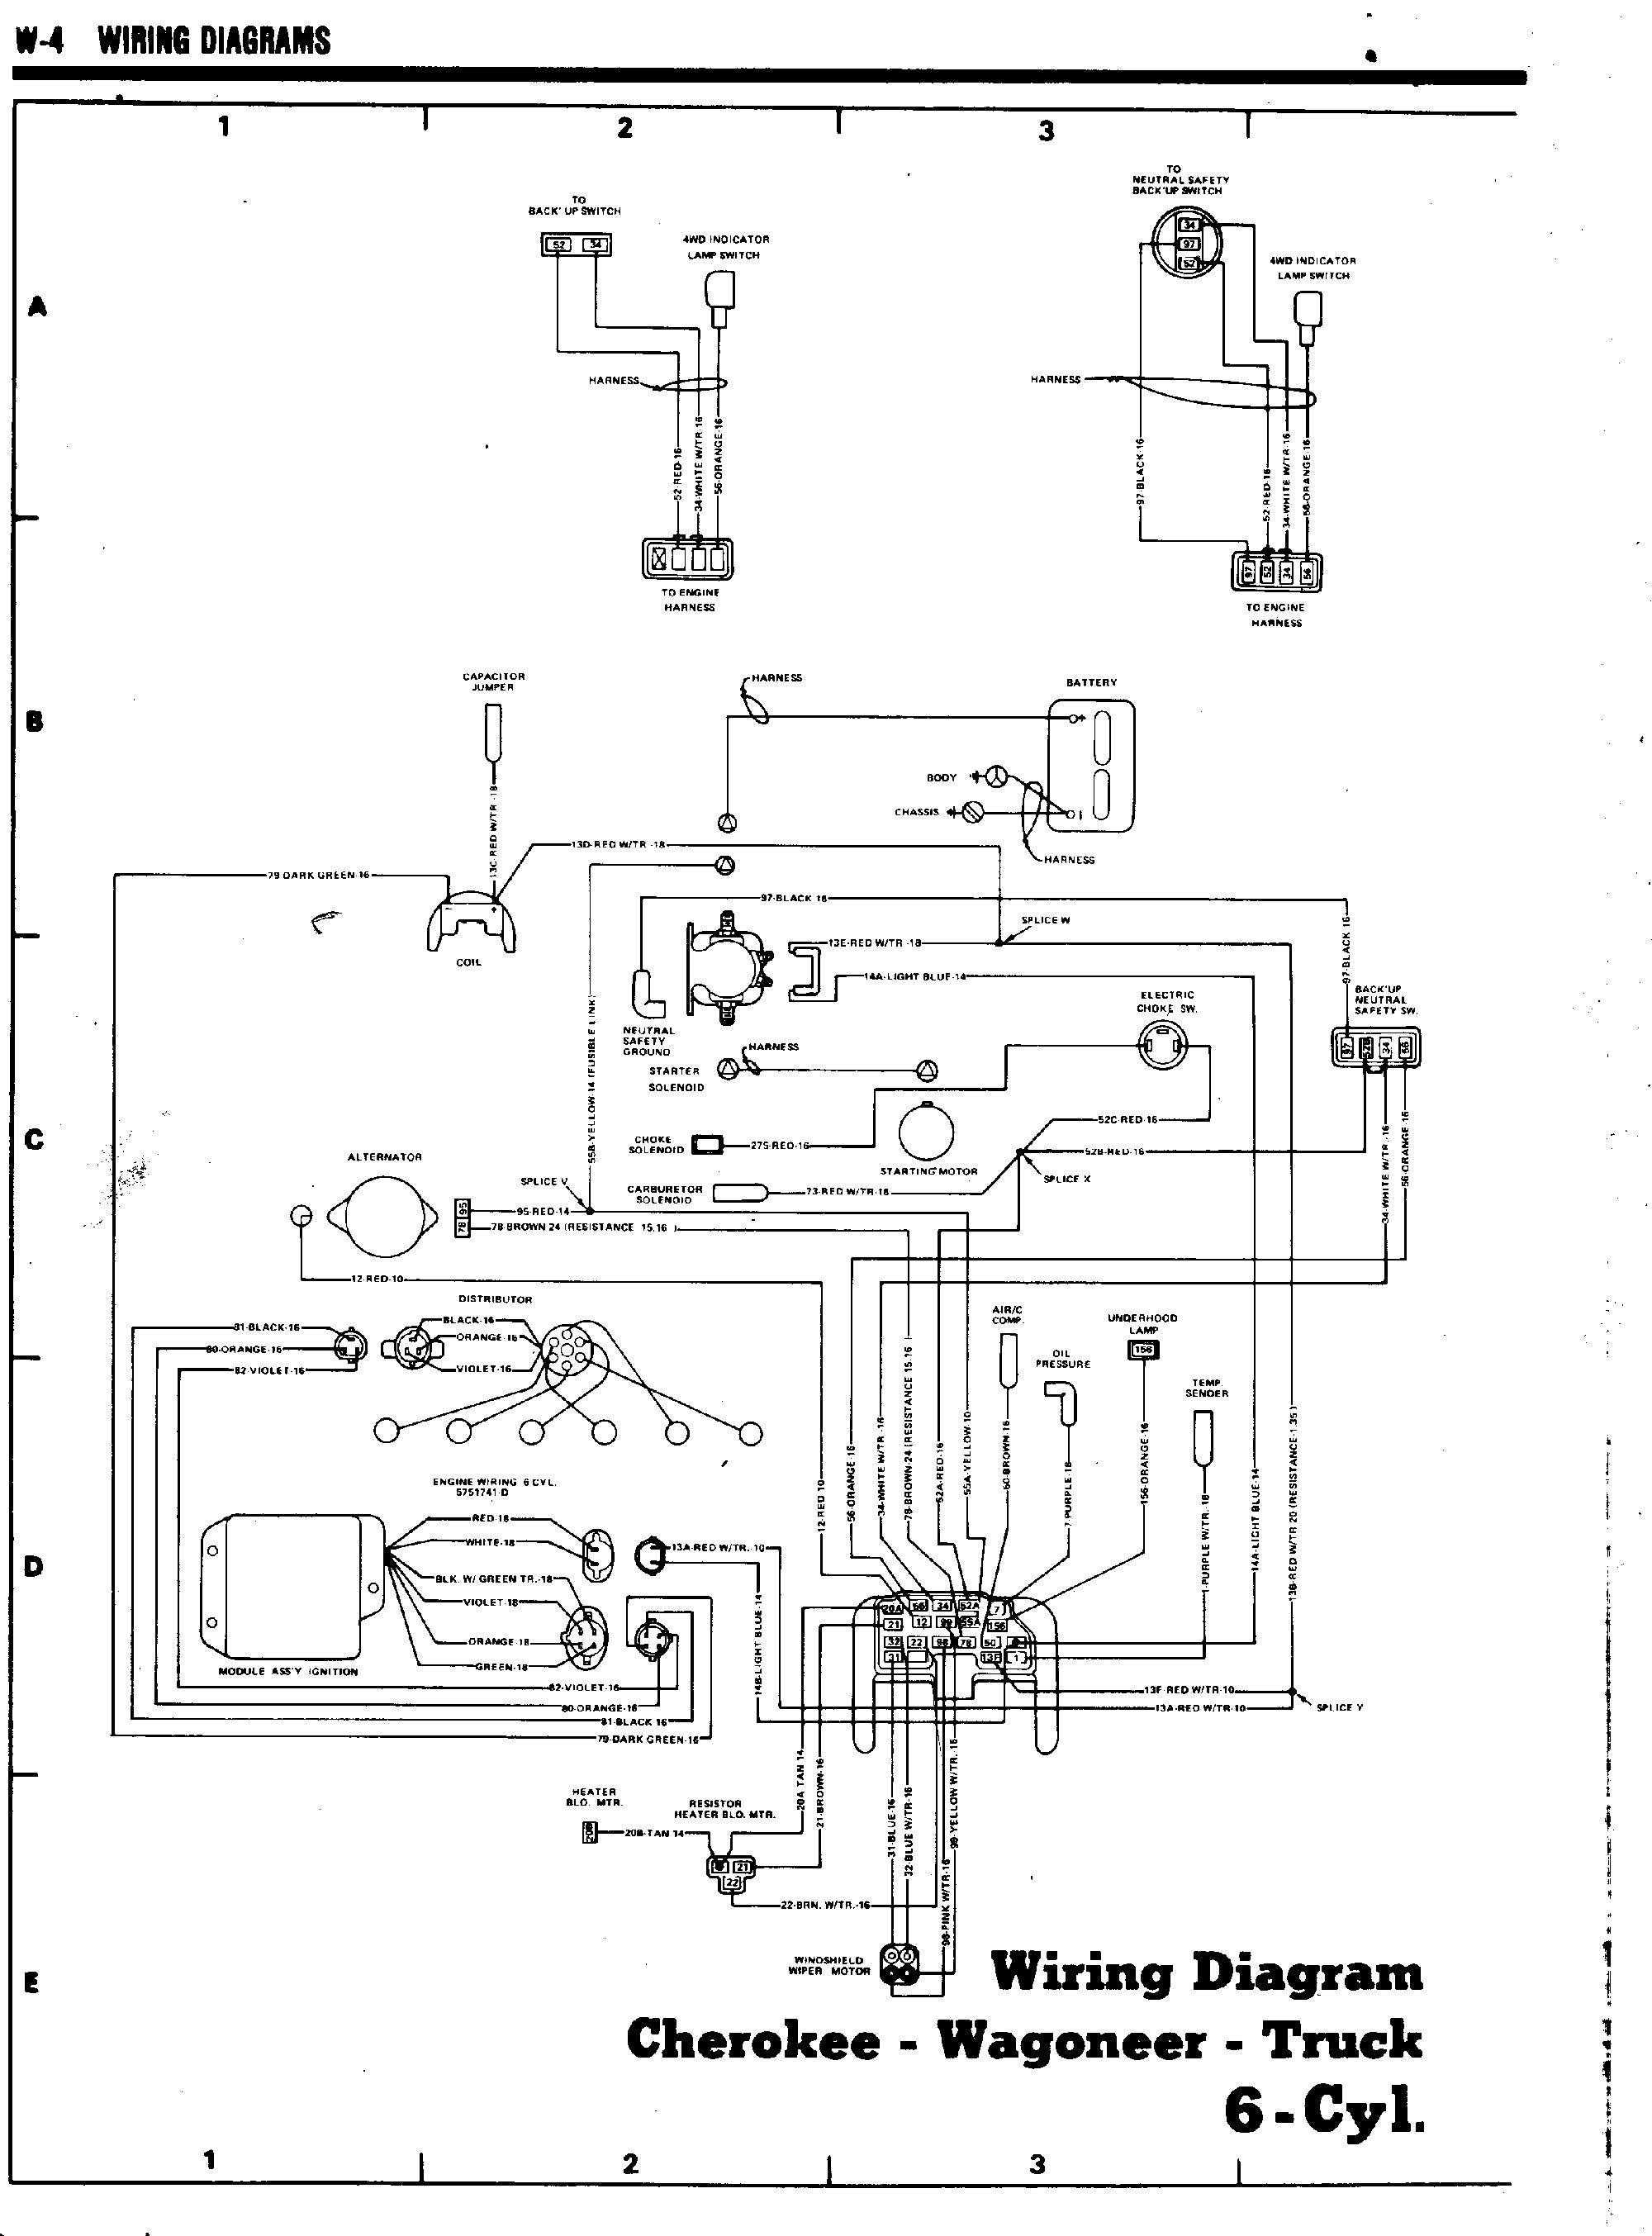 wire diagram for 01 jeep cherokee